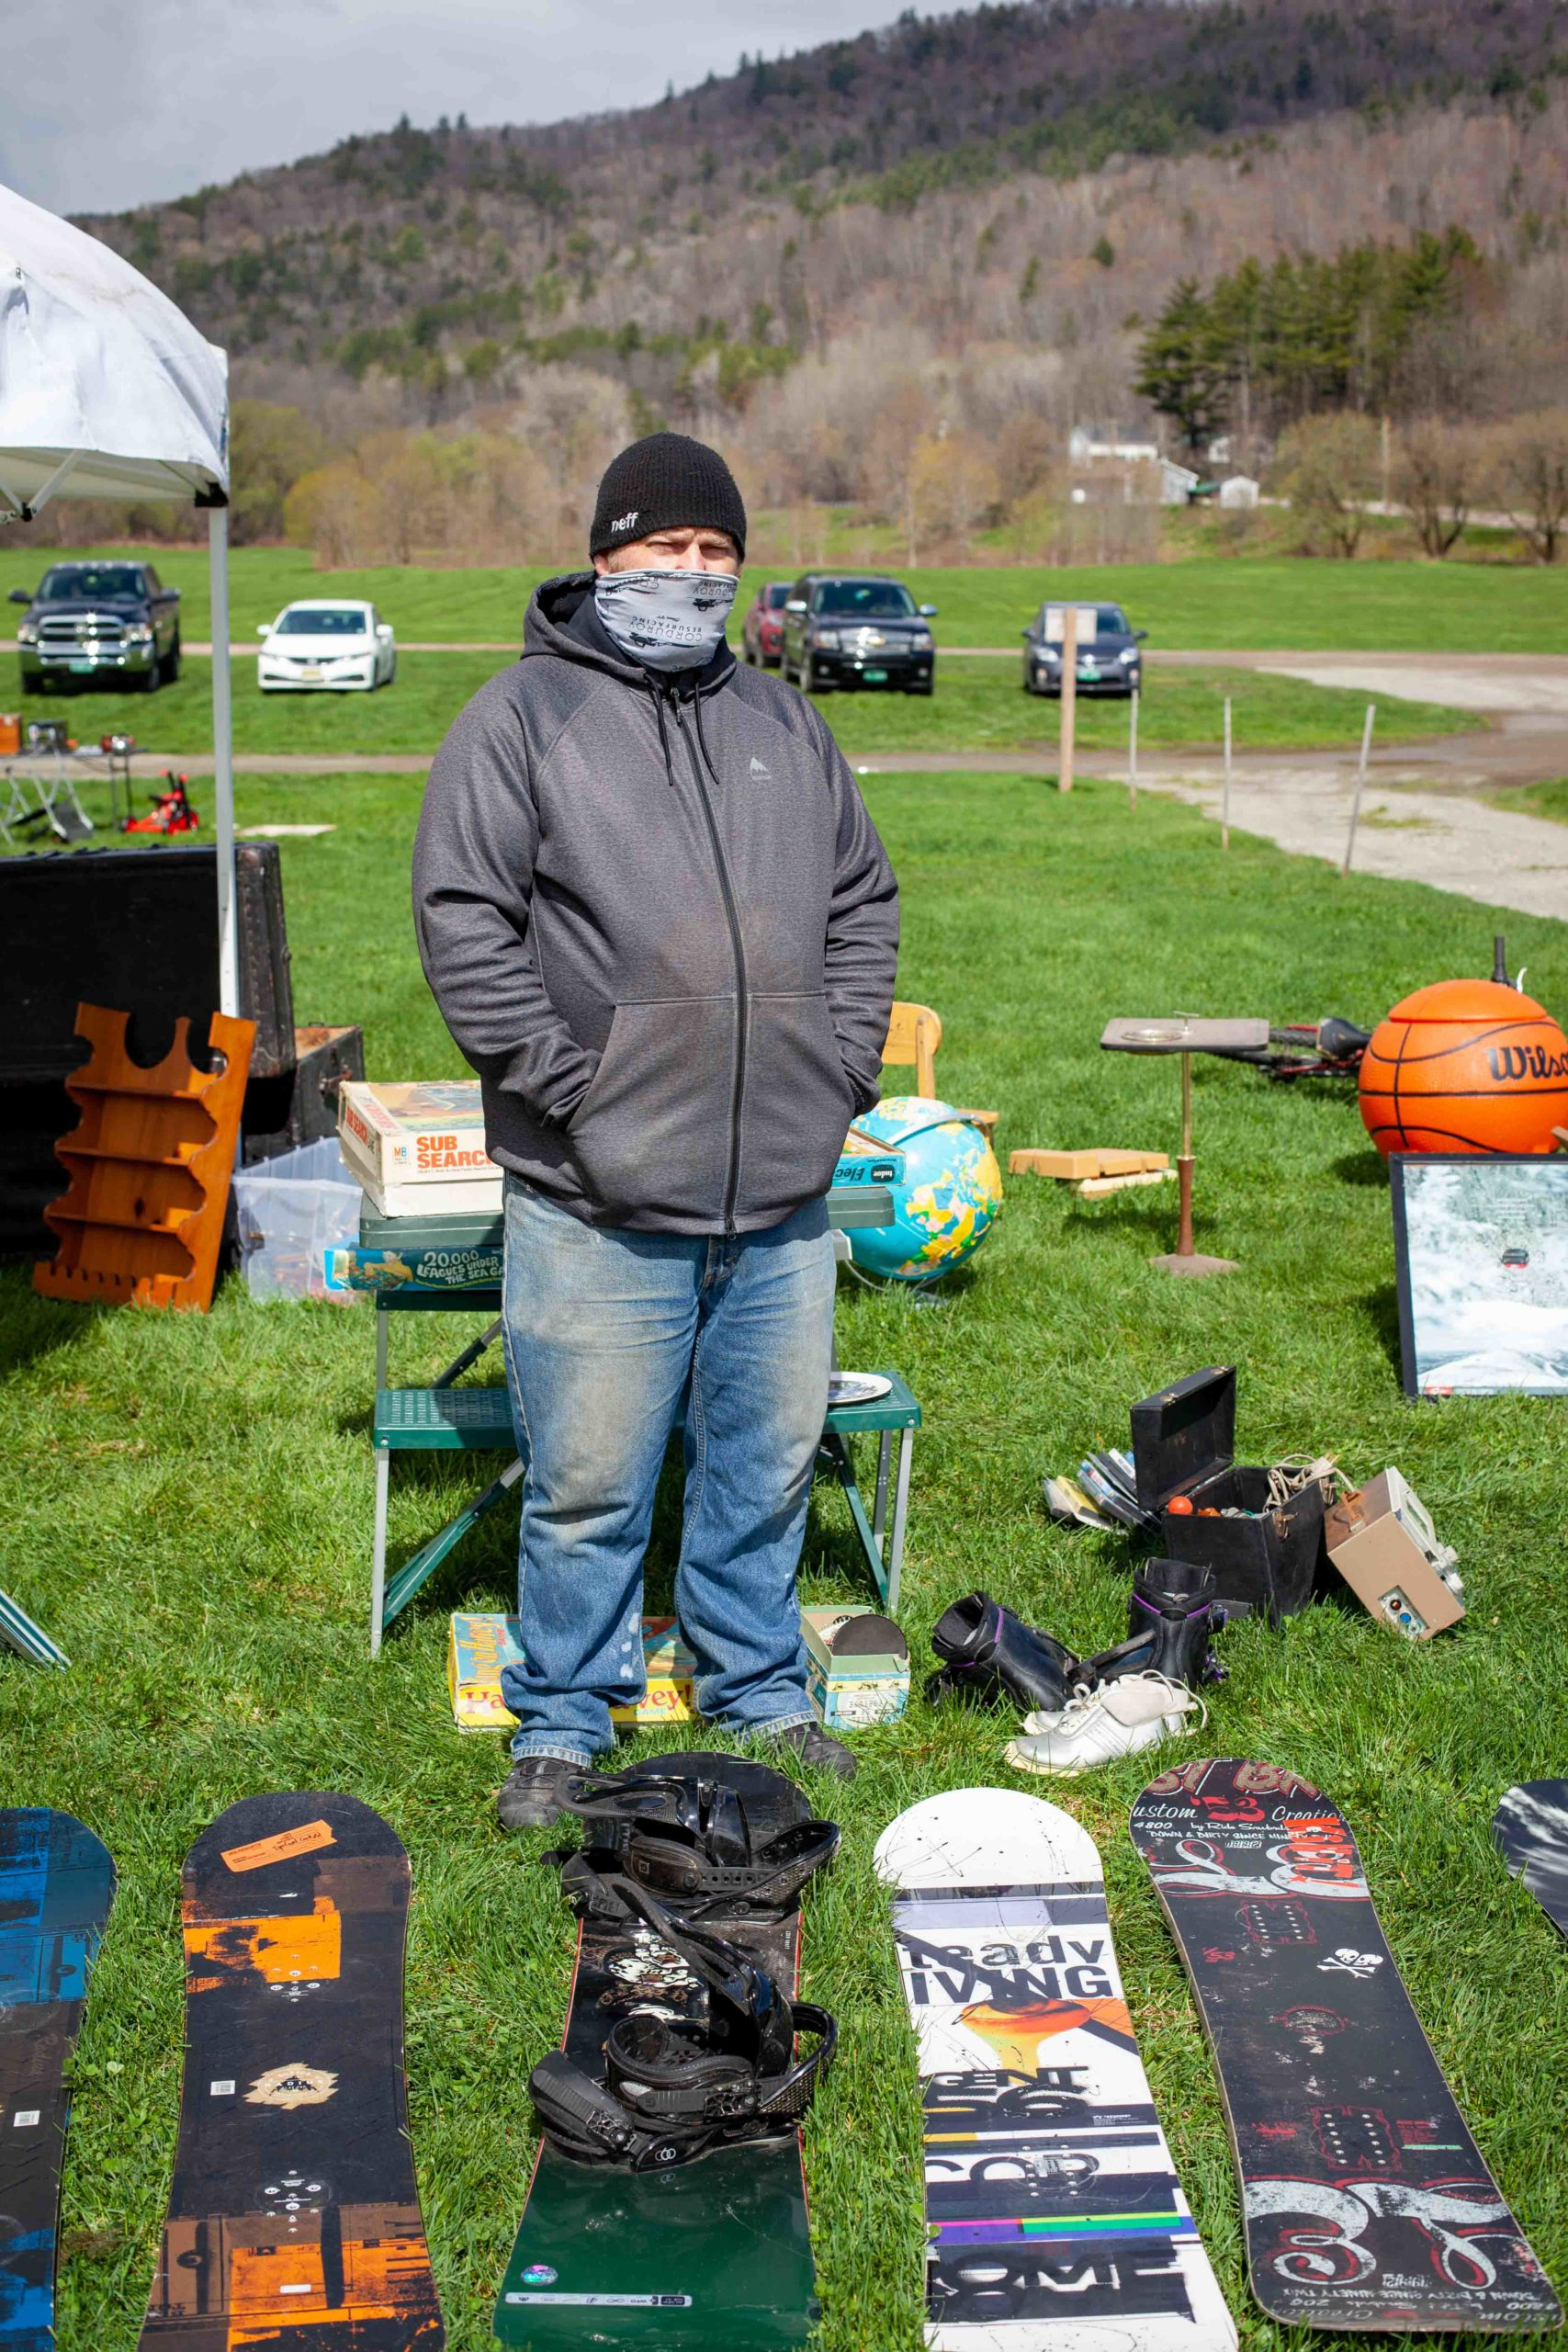 Man in front of row of snowboards on grass with other sale items in background